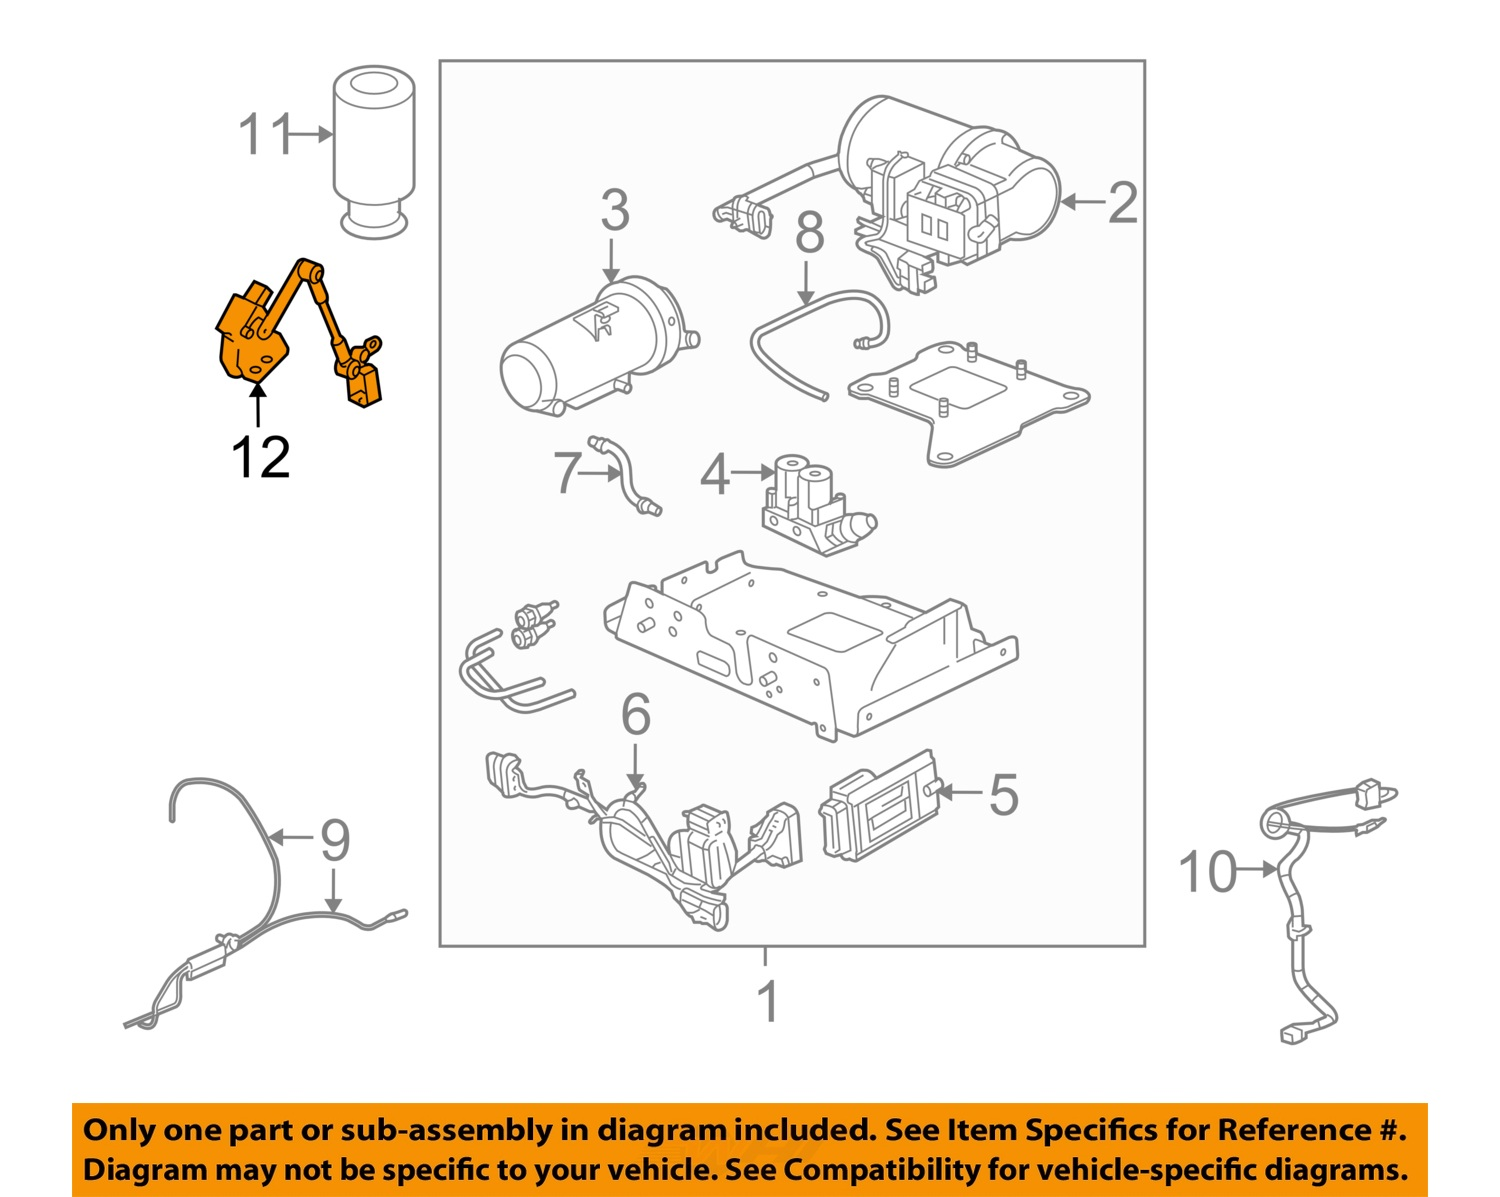 2005 Hummer H2 Wiring Diagram 2003 Air Suspension